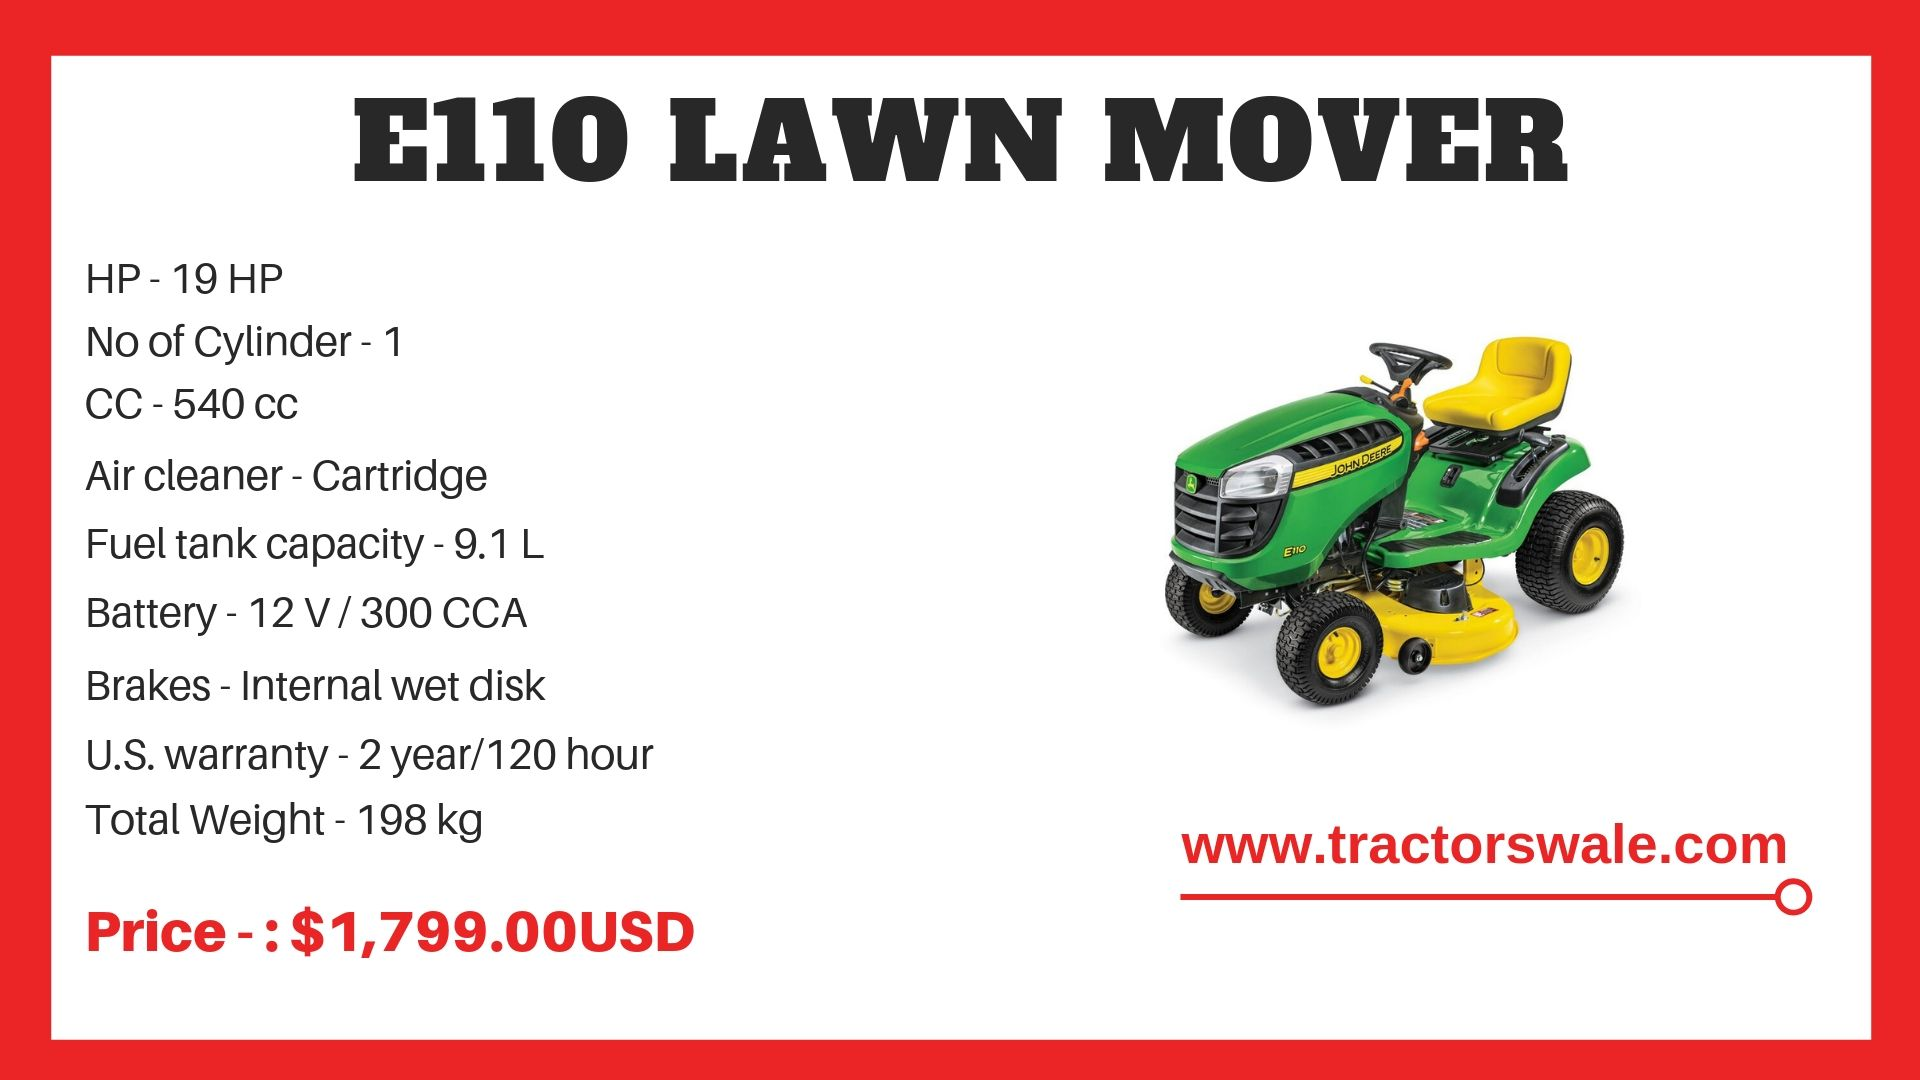 Lawn Mower E110 Specifications